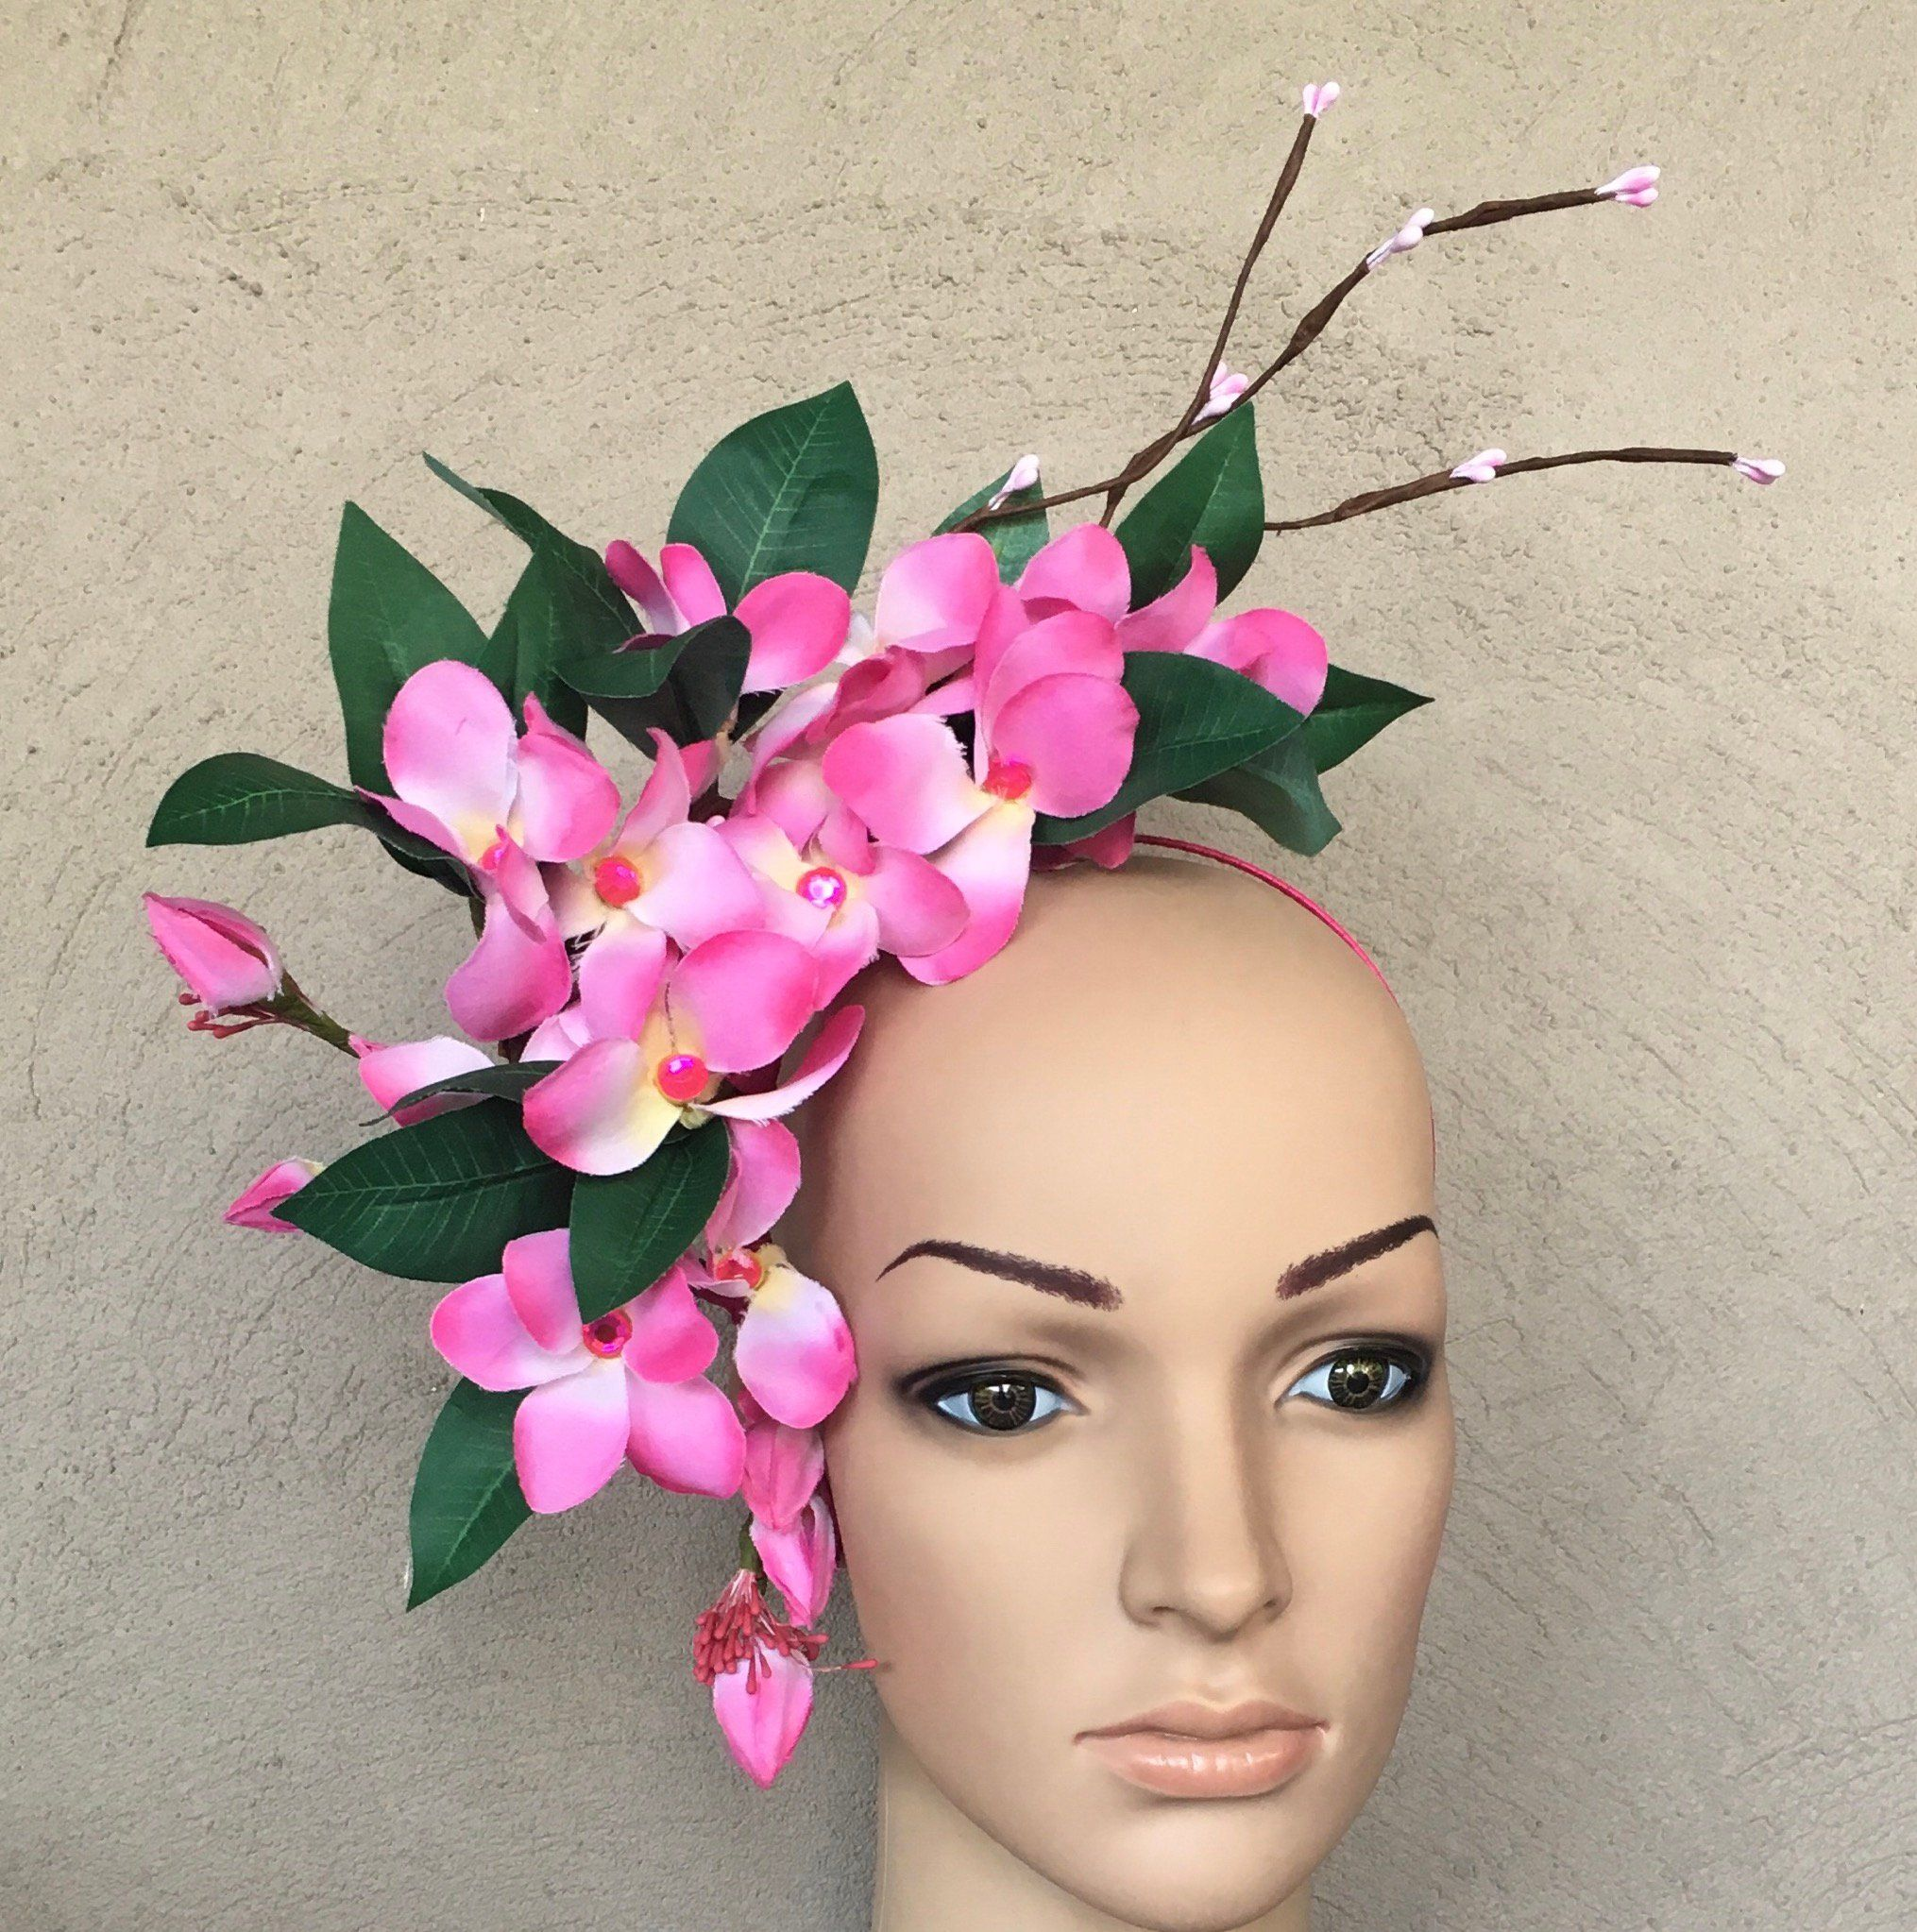 Pink flower fascinator lightweight and easy to wearone size fits pink flower fascinator lightweight and easy to wearone size fits allfree standard postage in australia postage outside australia at buyers costthis mightylinksfo